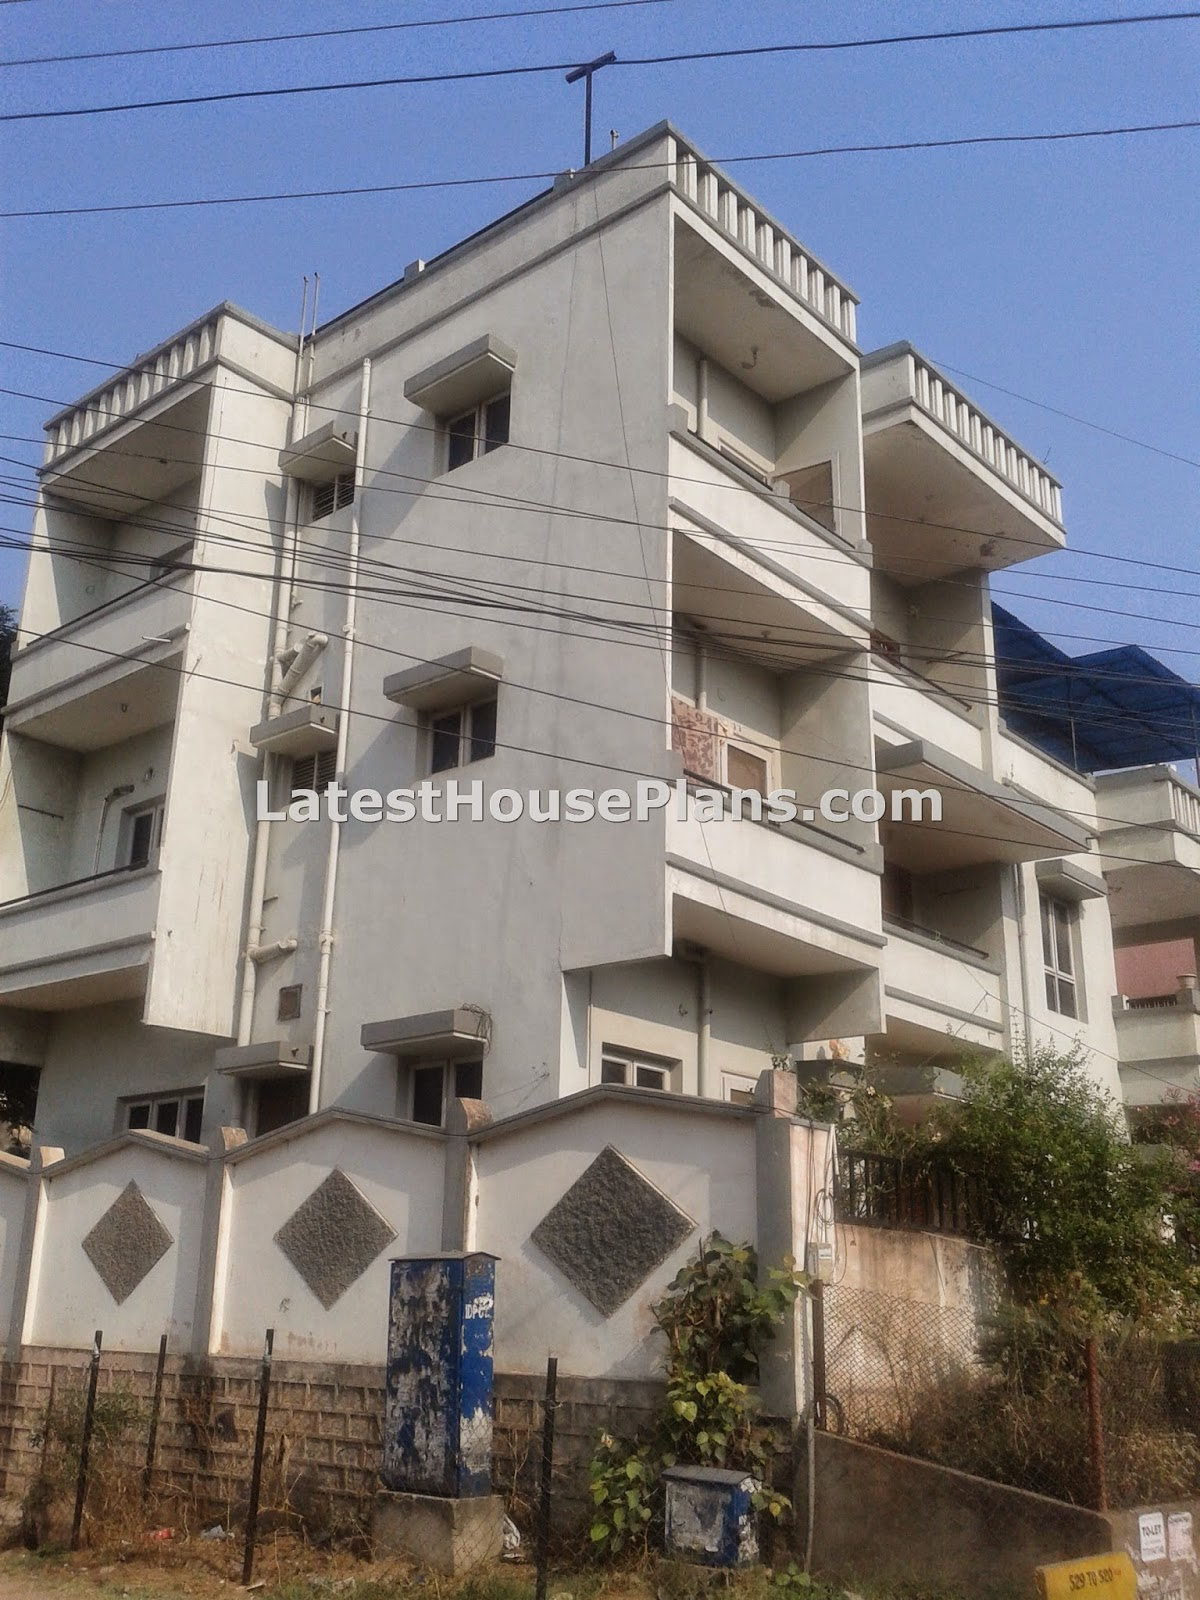 Andhra pradesh 3 floor house elevation designs latest for Elevation plans for buildings